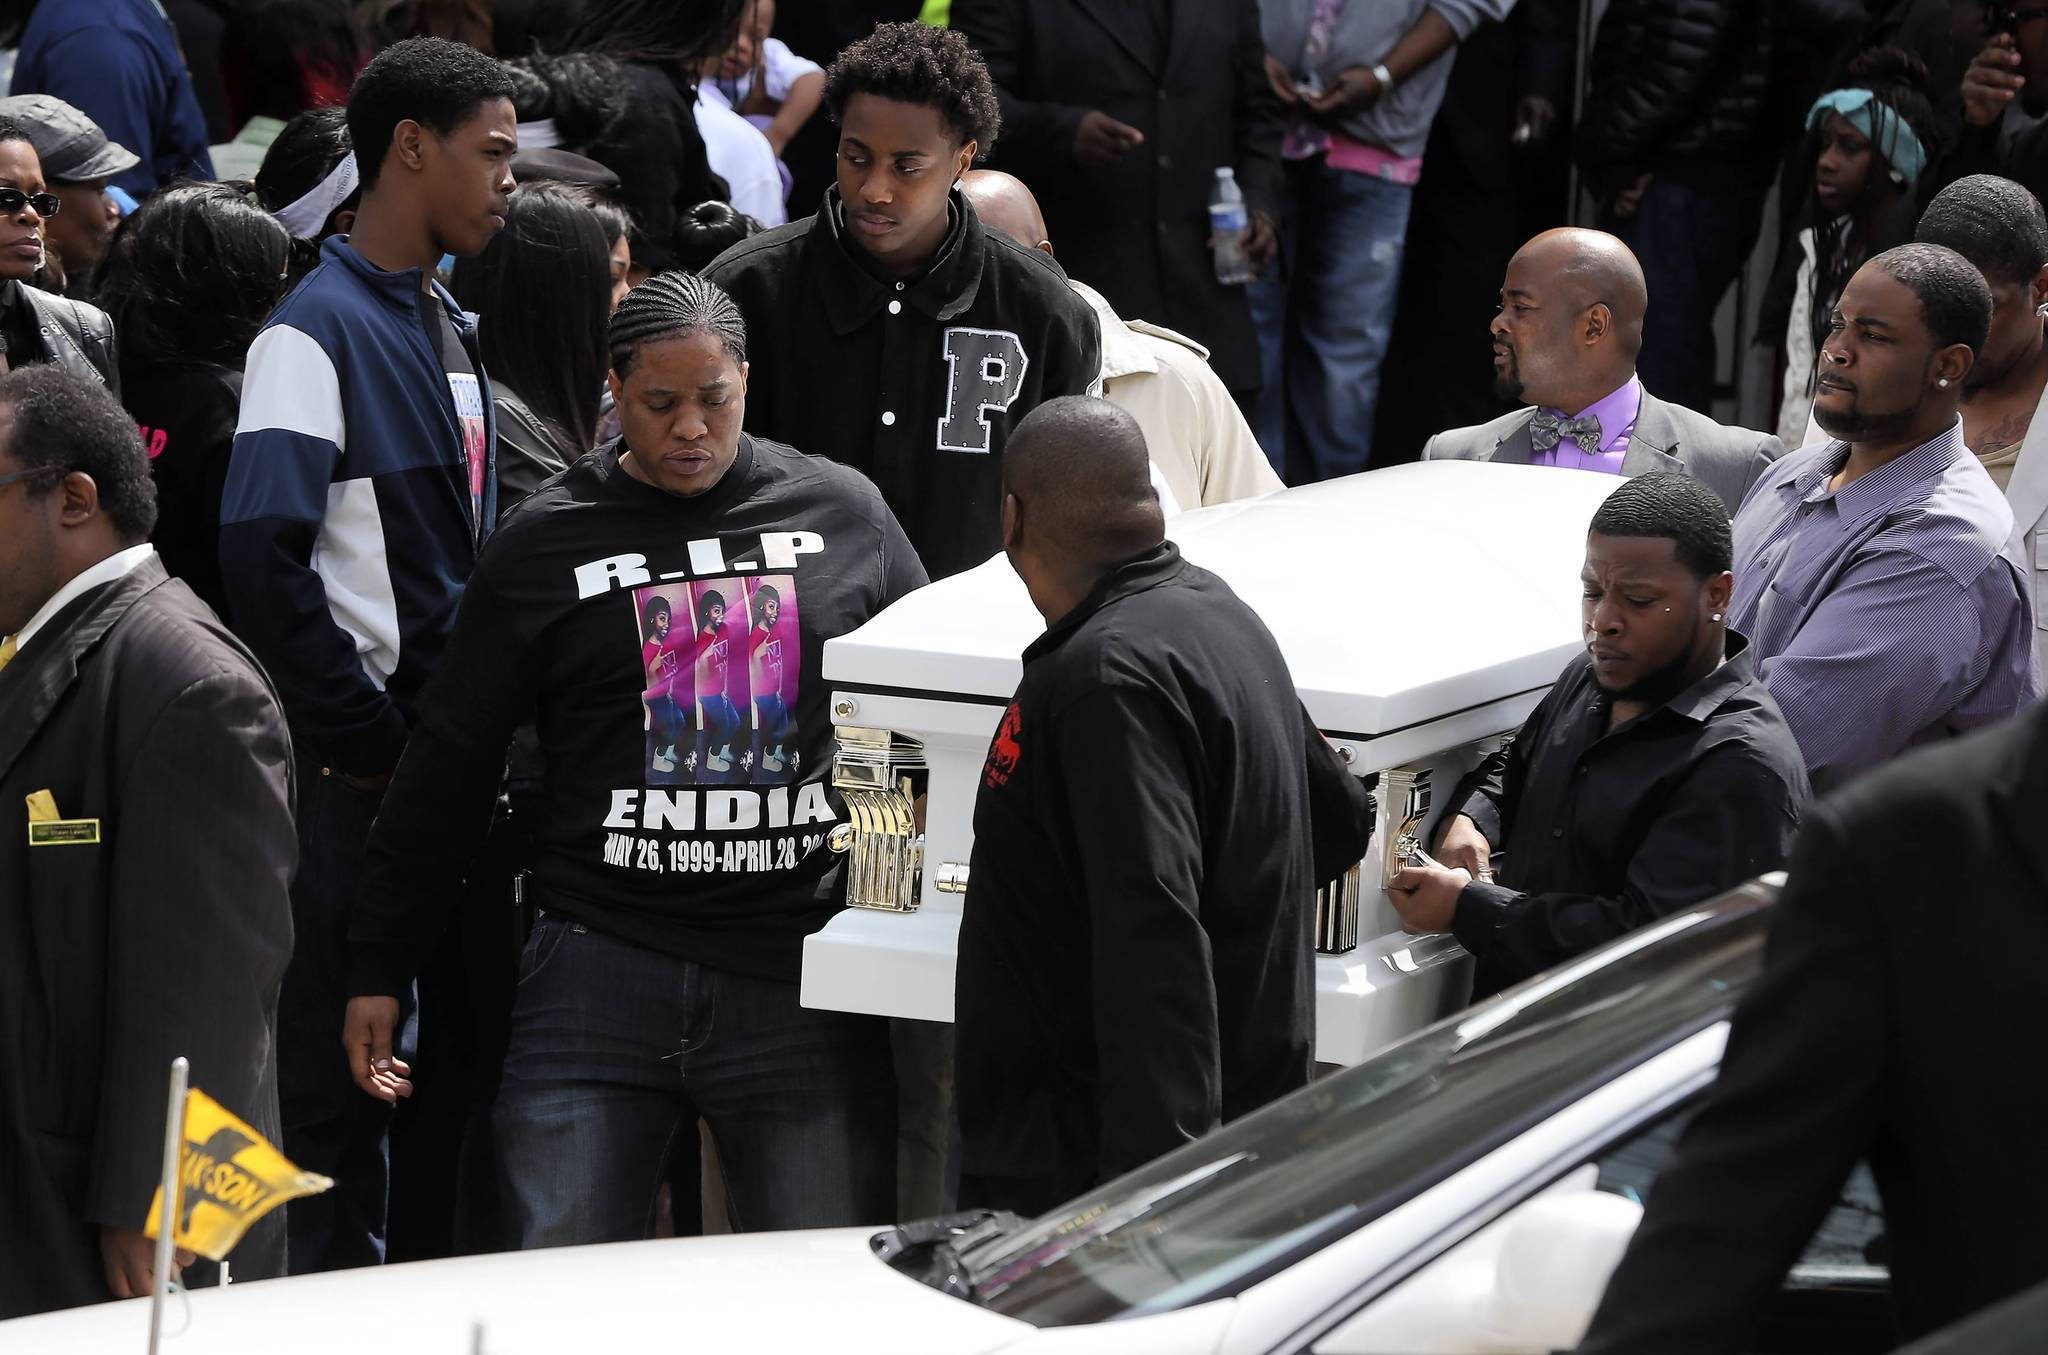 Endia Martin's casket is brought out of St. Andrews Temple in Chicago after her funeral.